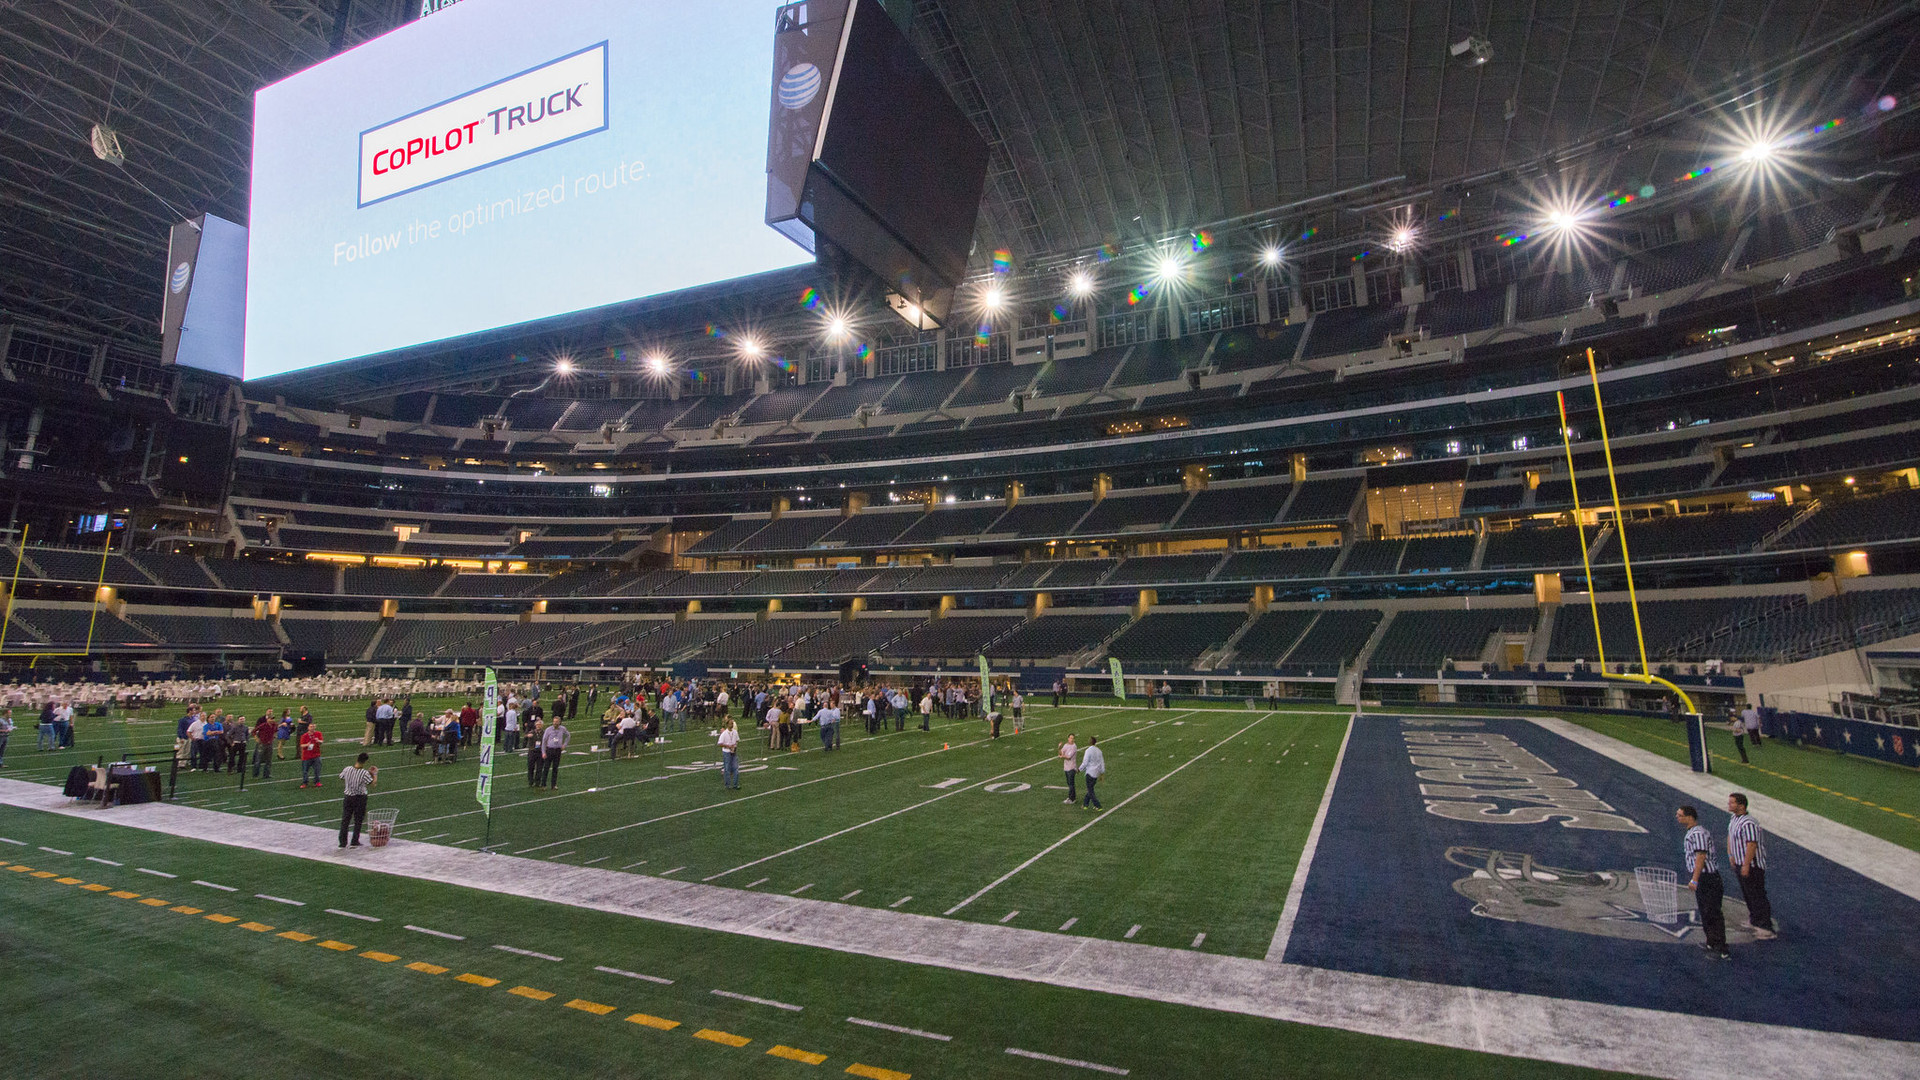 Dining on the Dallas Cowboys football field